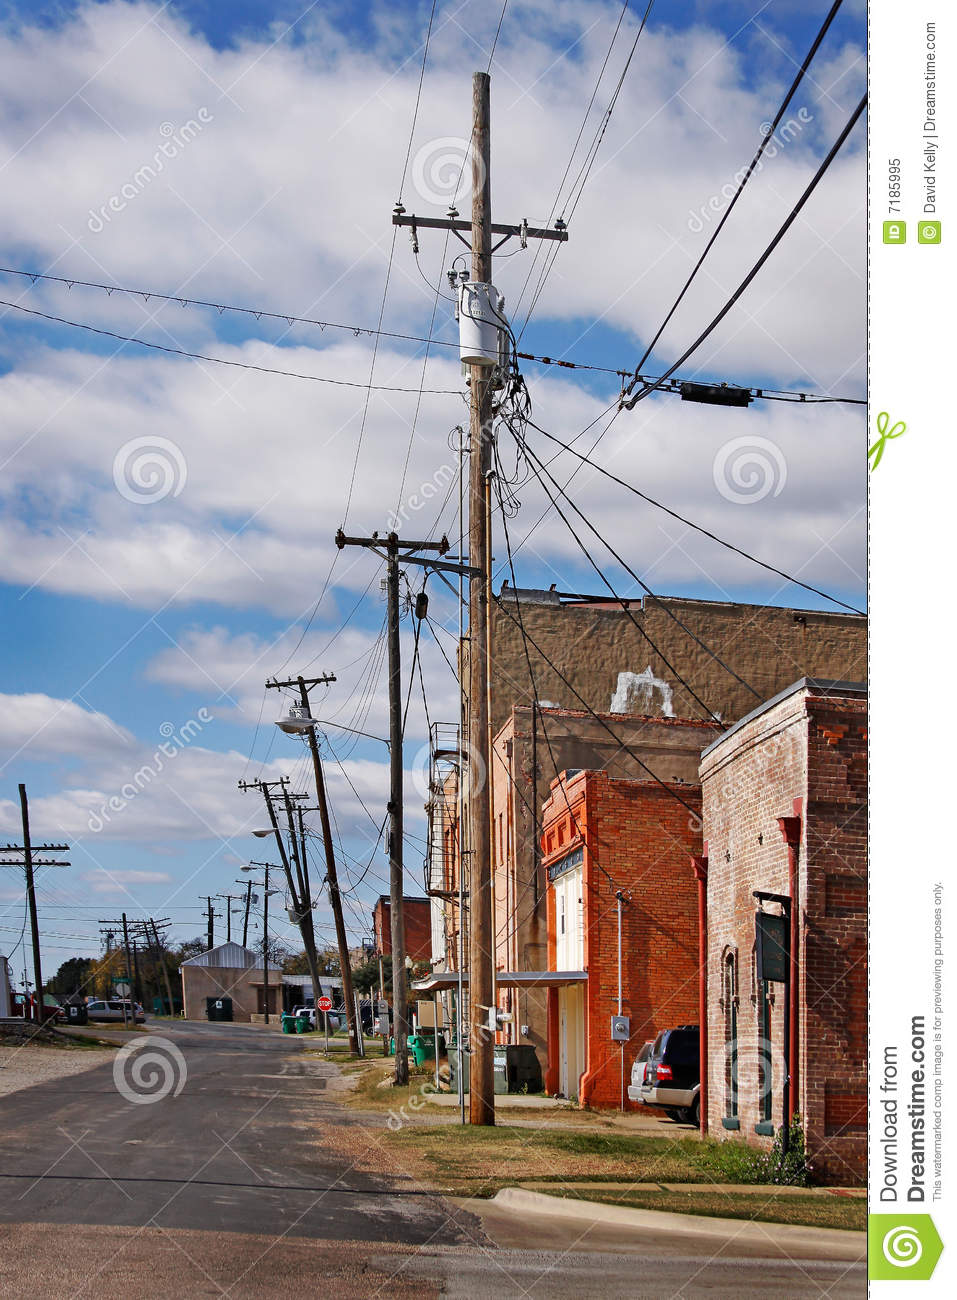 Vintage Small Town Stock Image Image Of Village Stores